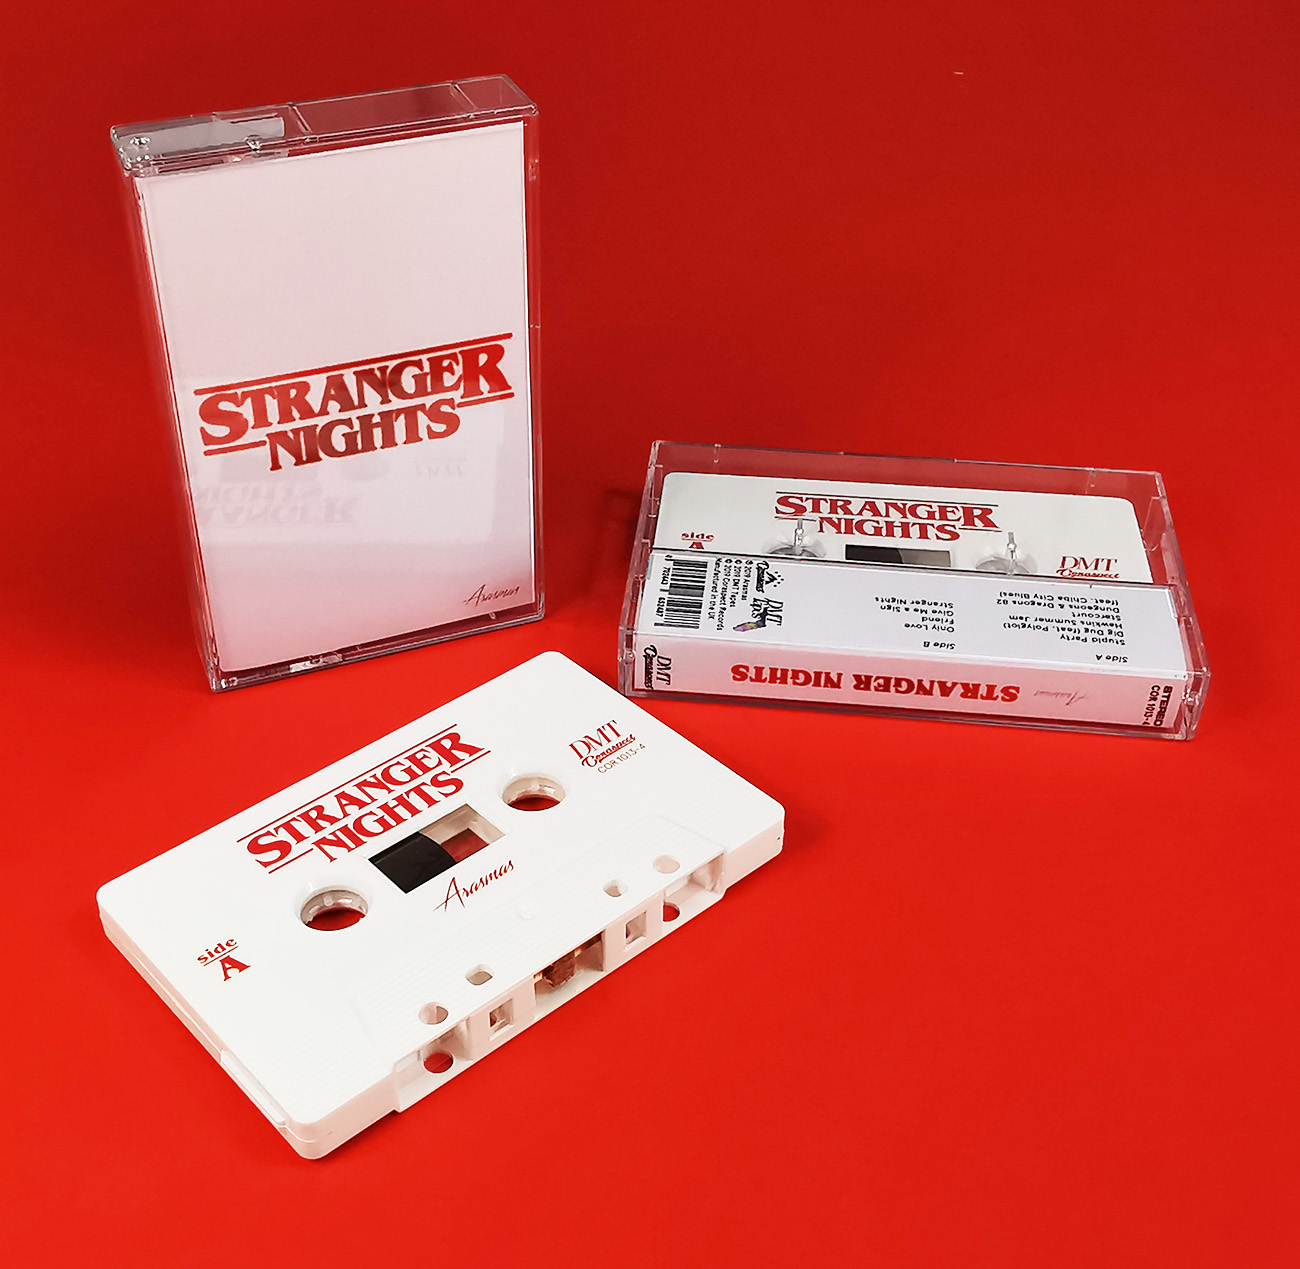 Stranger Nights cassette tapes in the branding style of 'Stranger Things'